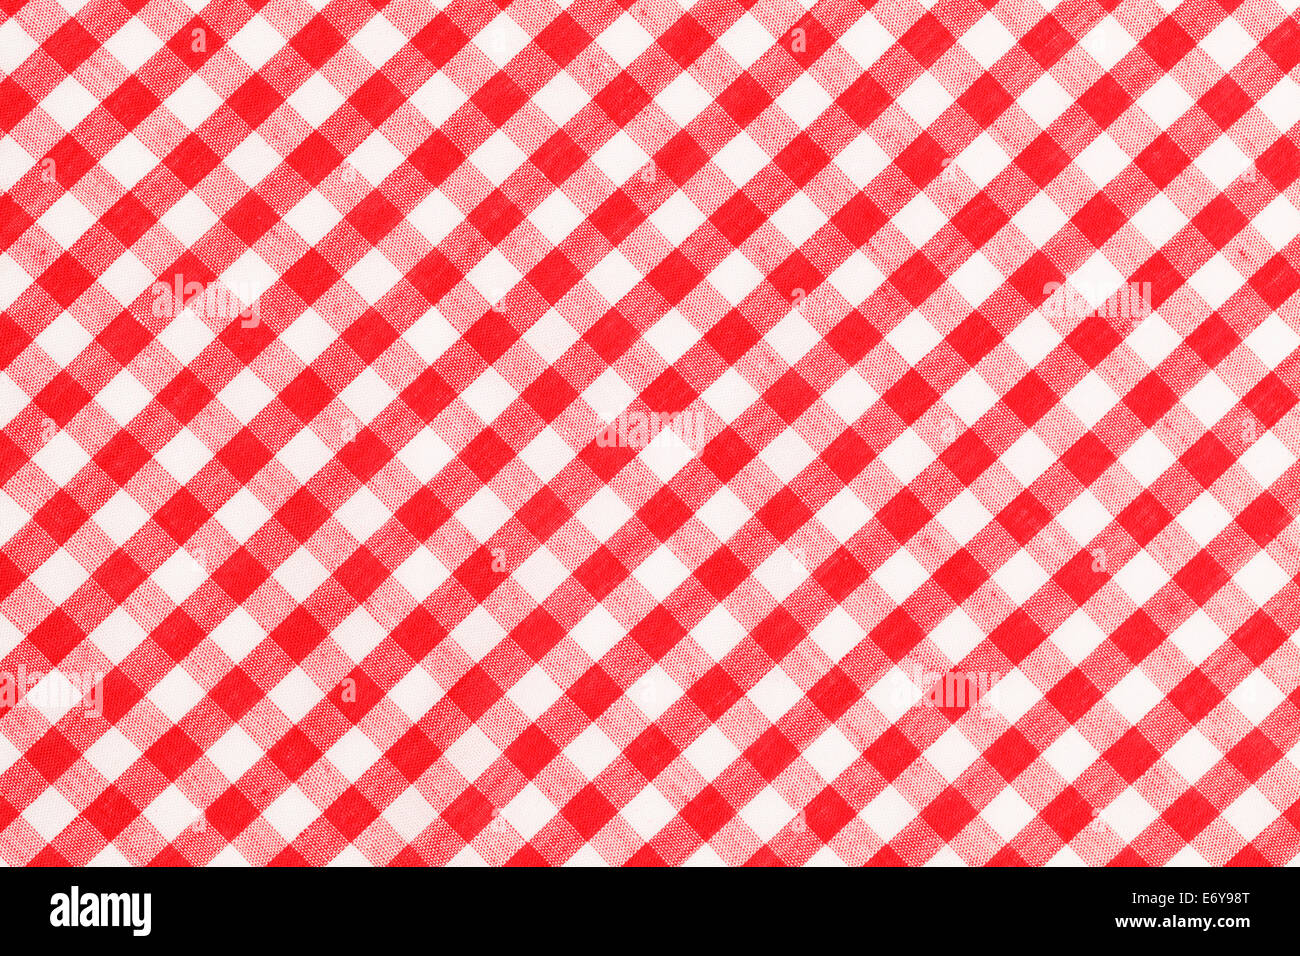 Red And White Checkered Table Cloth Background.